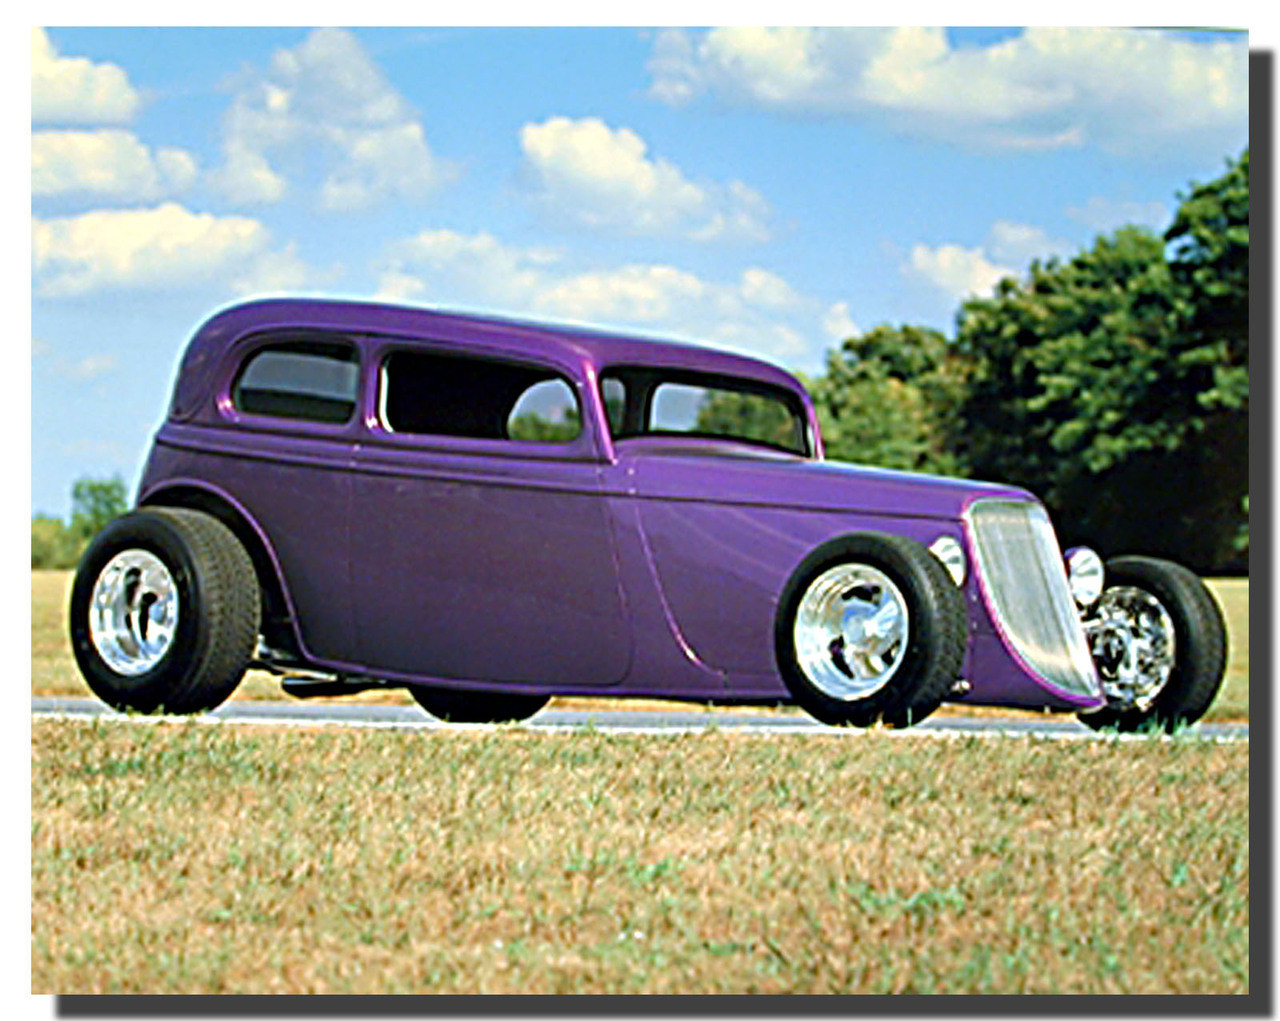 1932 Ford Sedan Classic Purple Car Poster Car Posters Automotive Posters